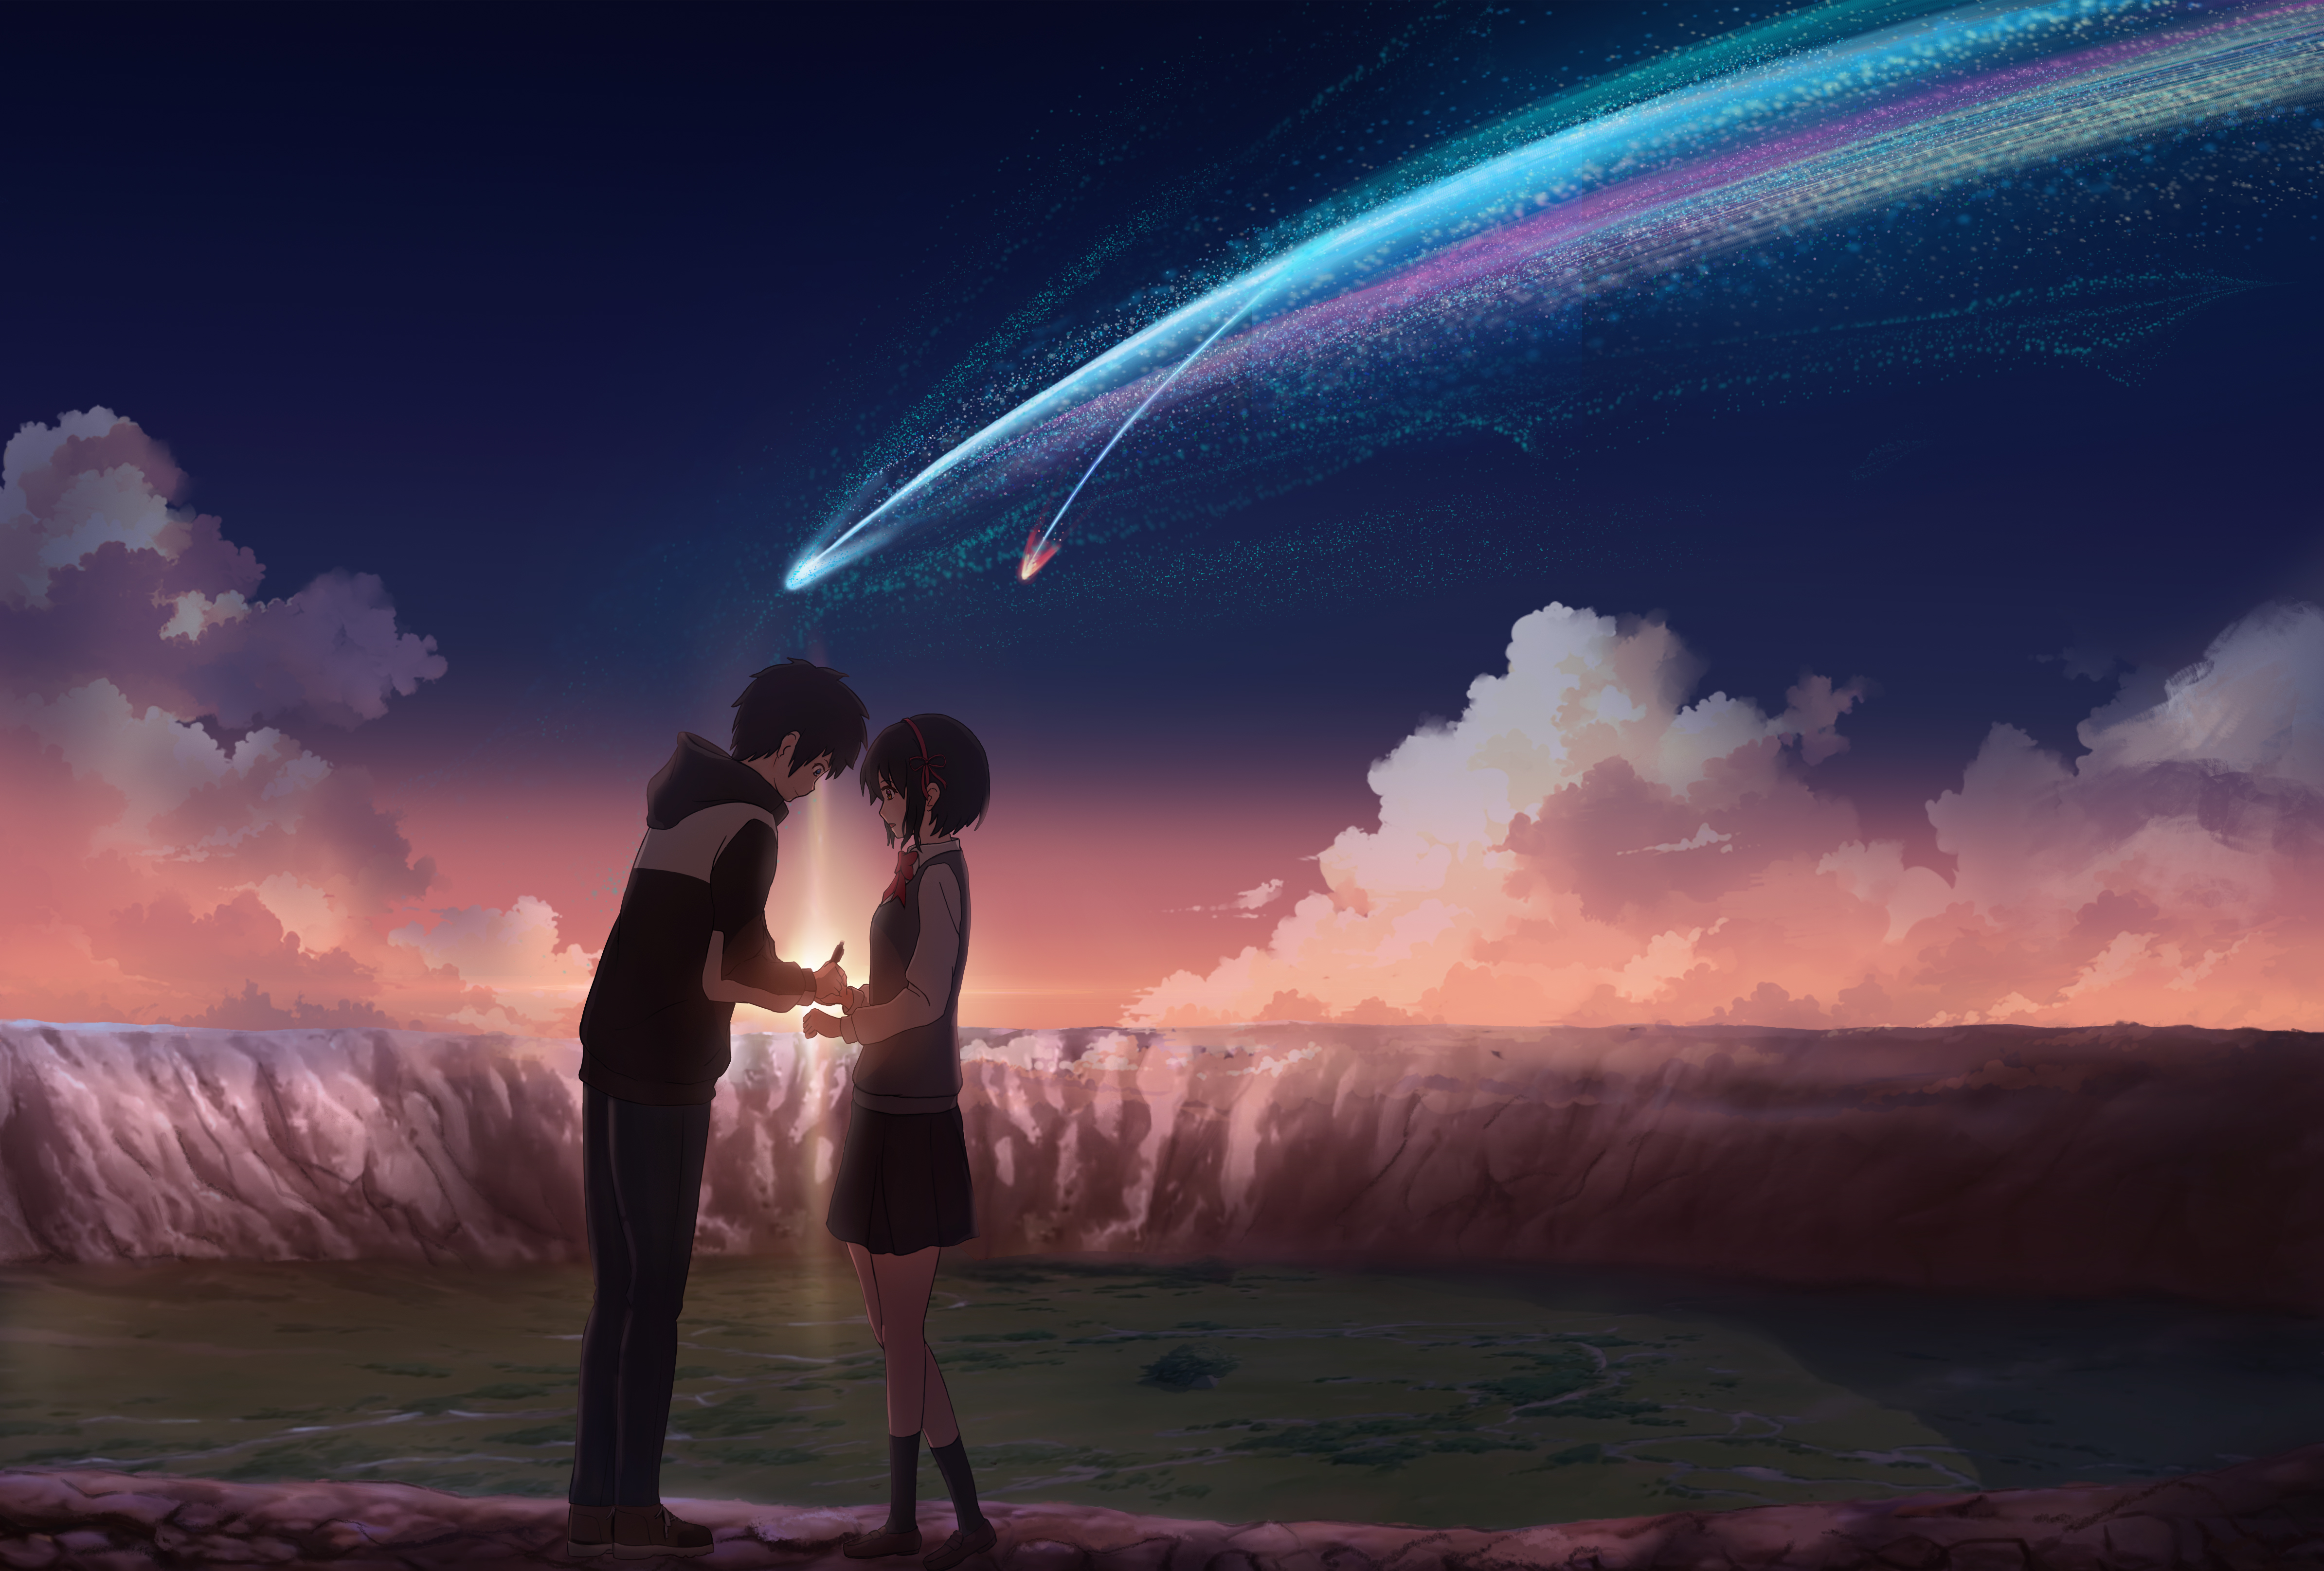 85 4k Ultra Hd Kimi No Na Wa Wallpapers Background Images Wallpaper Abyss